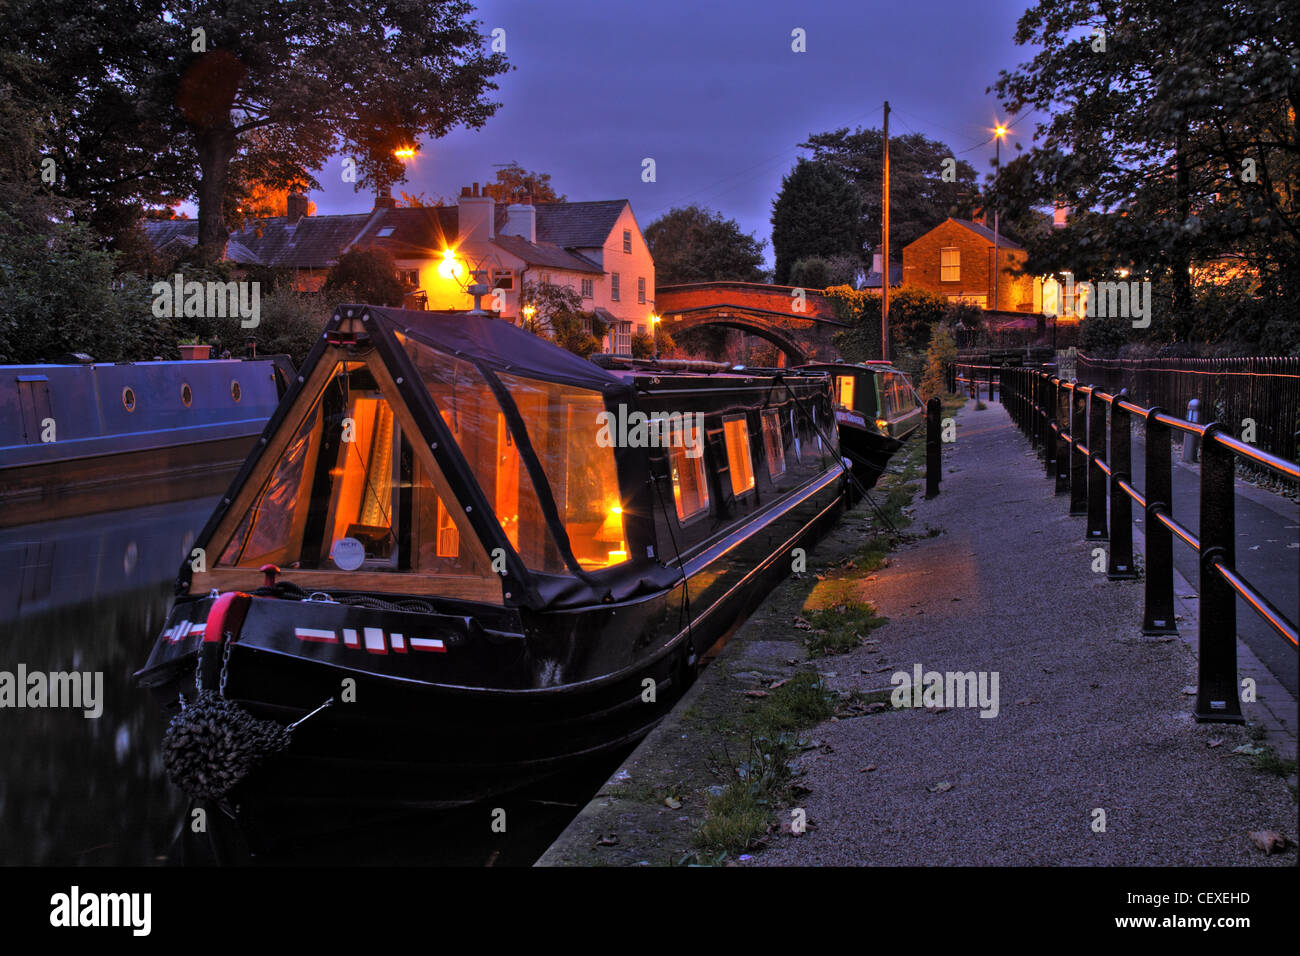 Cheshire,charming,old,olde,peaceful,tourist,place,destination,England,Warrington,UK,Gb,Great,Britain,transport,boat,boats,barges,barge,longboat,butty,gotonysmith,night,shot,nightshot,evening,warm,glow,of,lights,romantic,lit,by,candle,candlelight,light,candles,narrowboat,basin,Bridgewater Canal,canal,basin,narrowboats narrow boats,gotonysmith,canal basin,Buy Pictures of,Buy Images Of